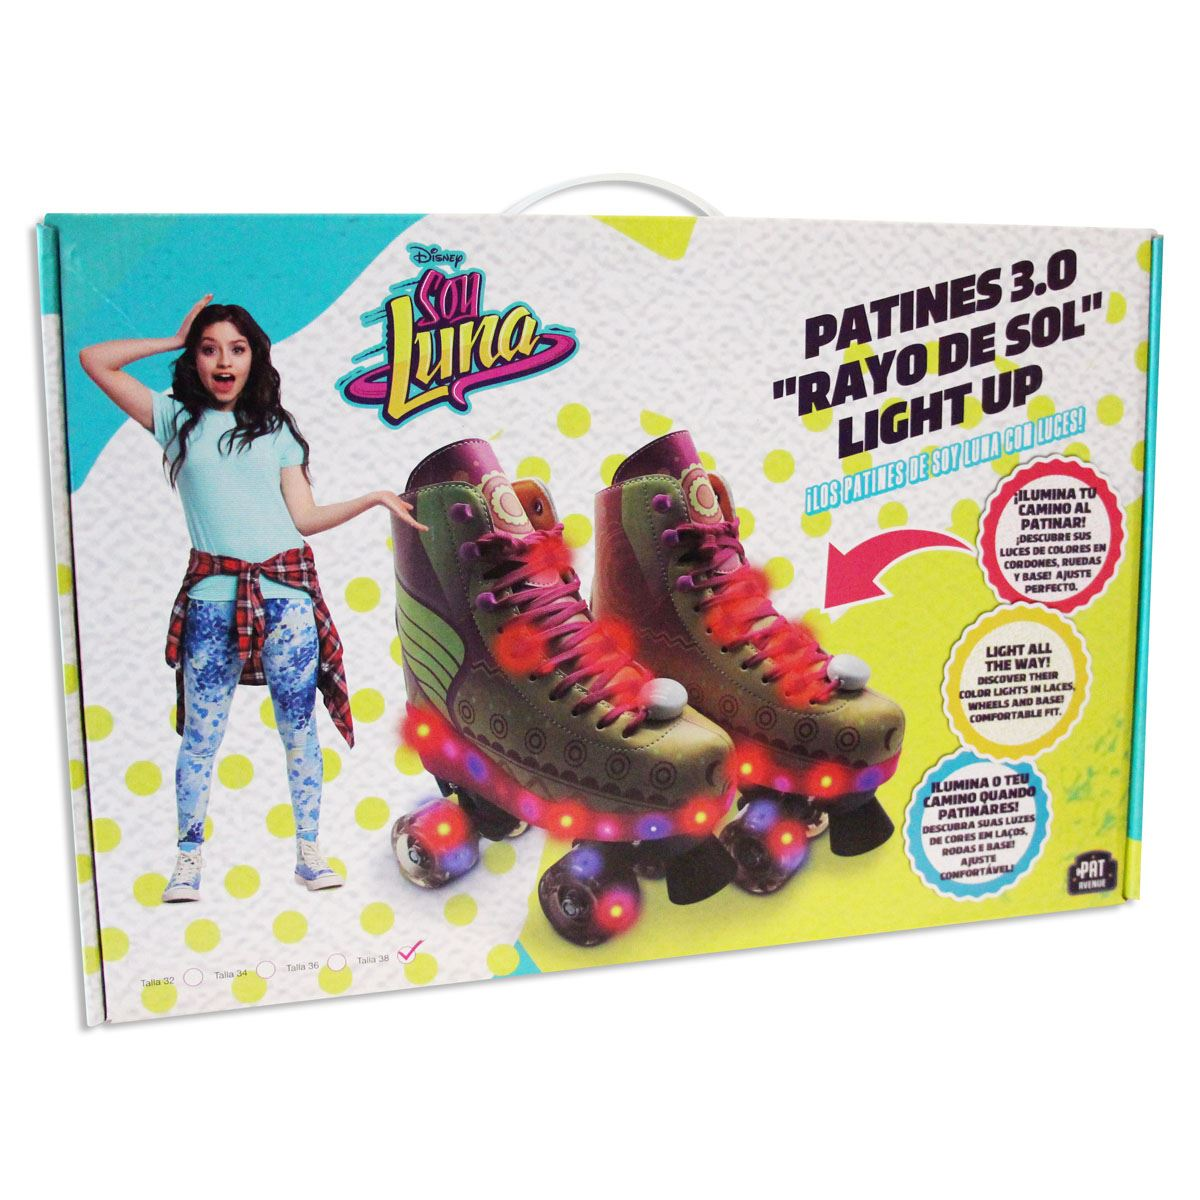 Patines 3.0 light up